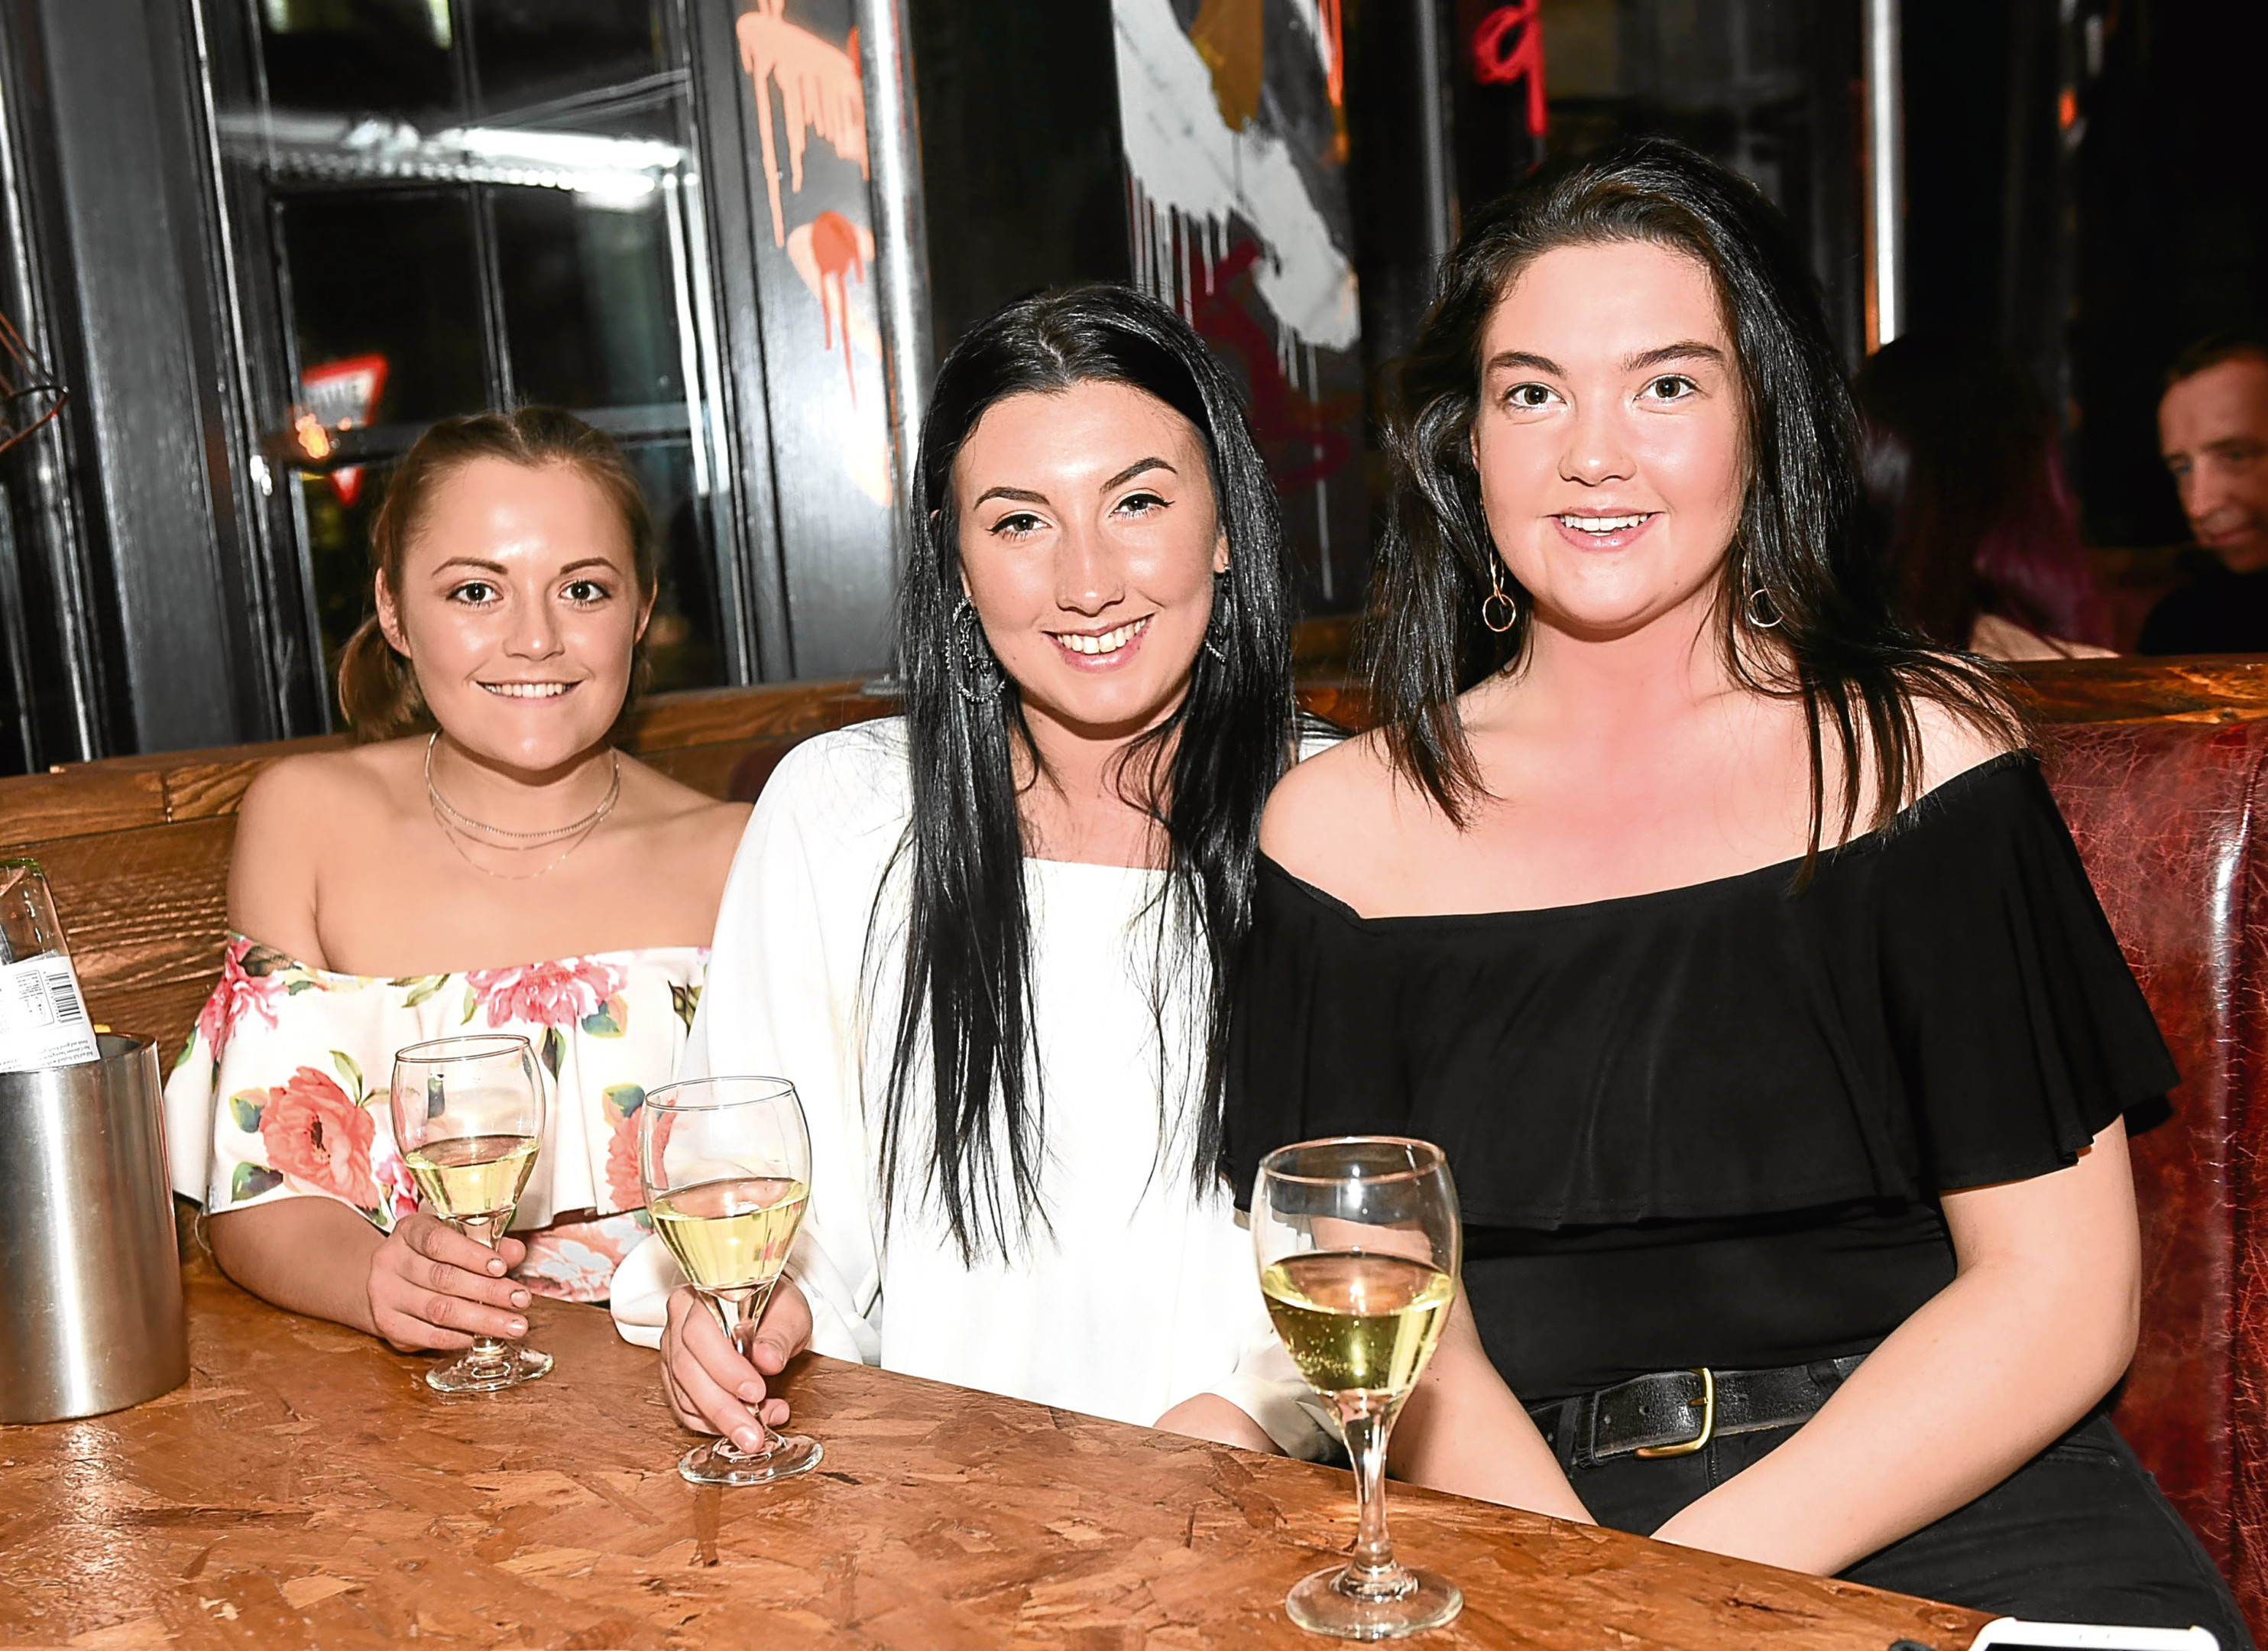 Boozy Cow: Aimee Budge, Zoe Wilson and Rhona McDonald